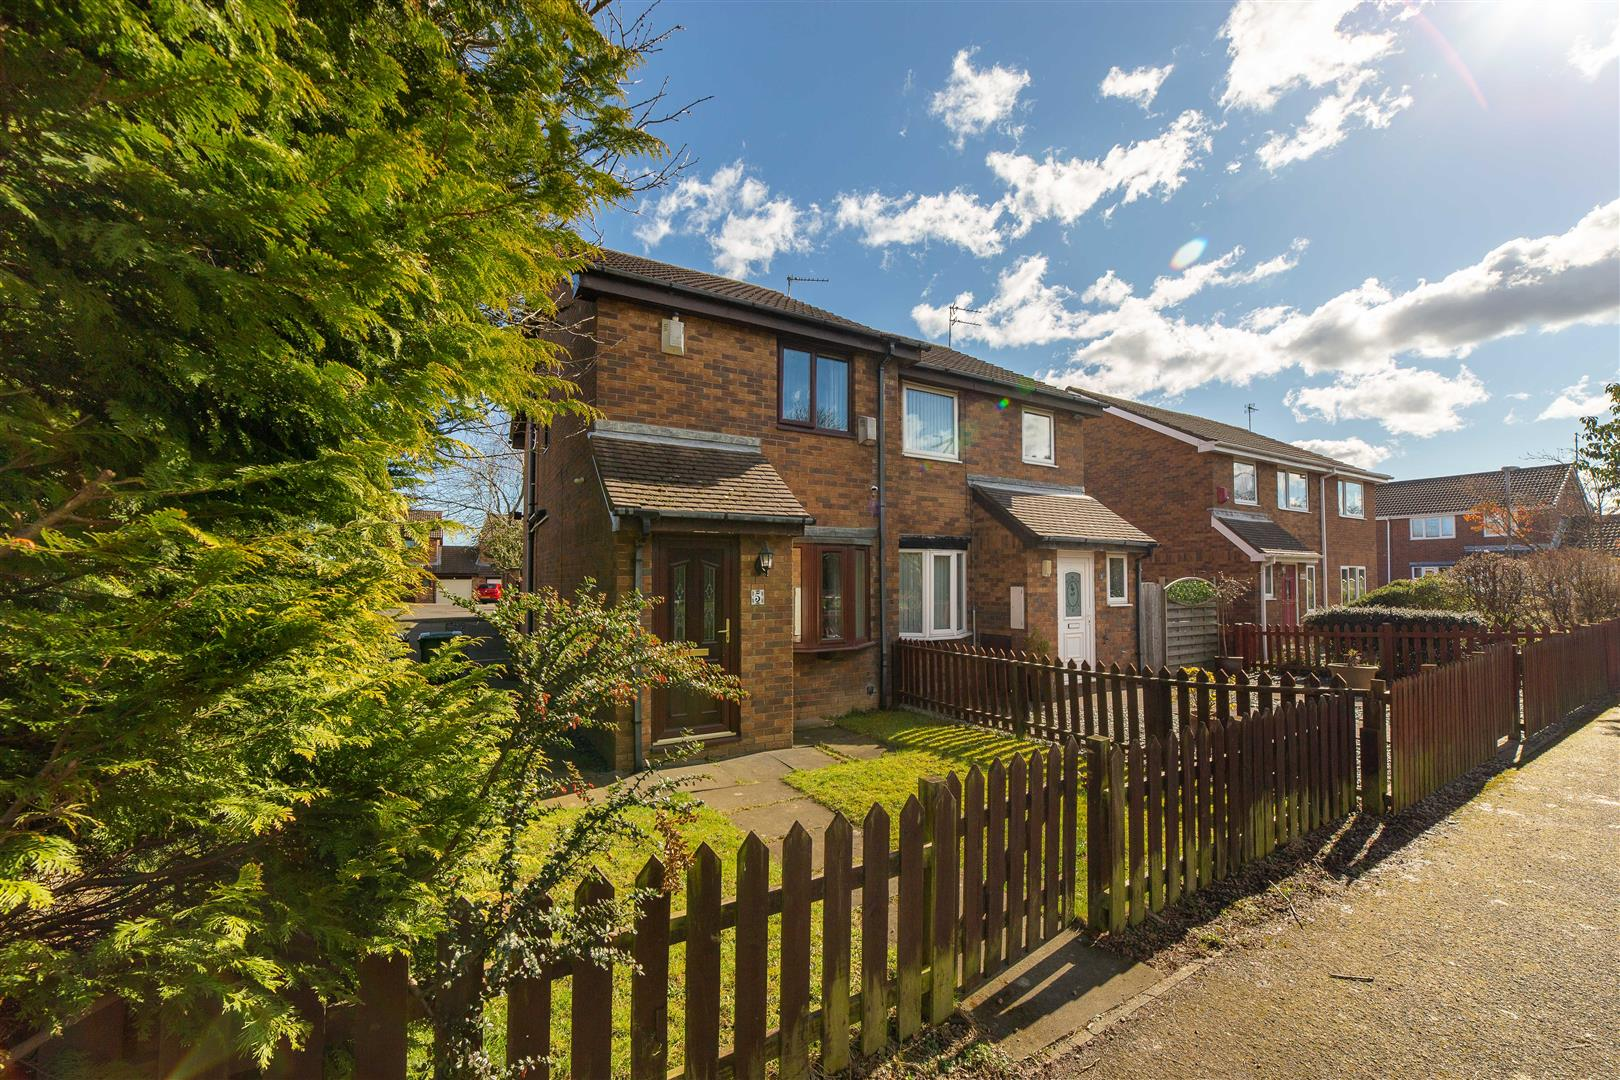 2 bed semi-detached house for sale in Cramlington, NE23 3LE, NE23